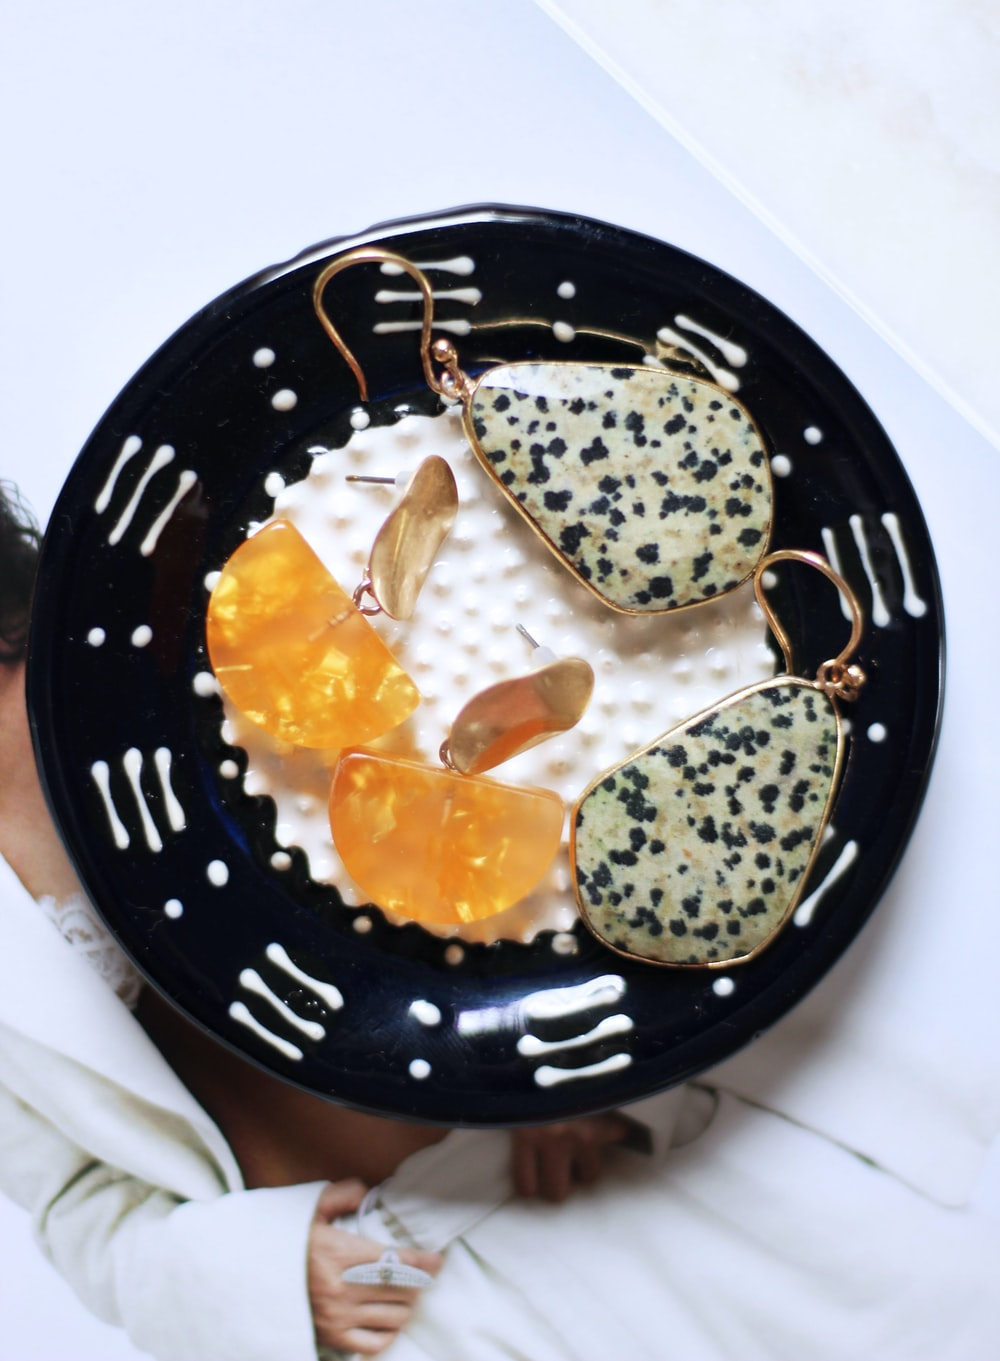 pair of gold-colored and white earrings